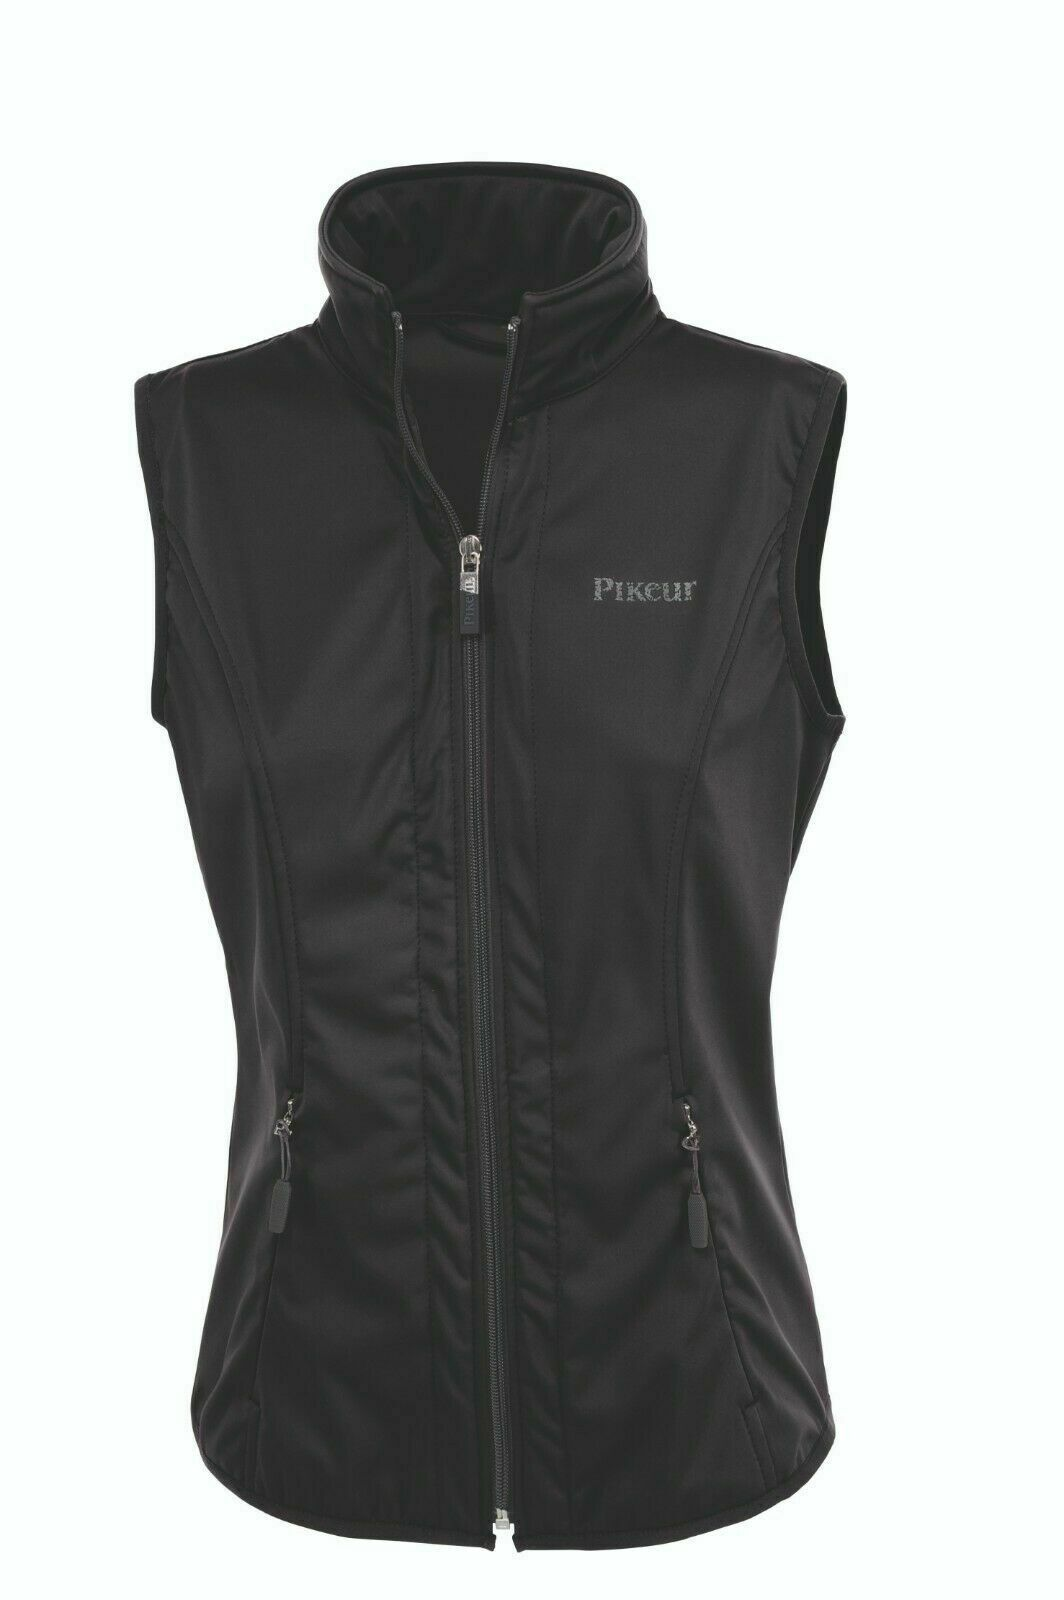 Pikeur Julie Softshell  Gilet Asphalt bluee 34 (size 6)  quality first consumers first